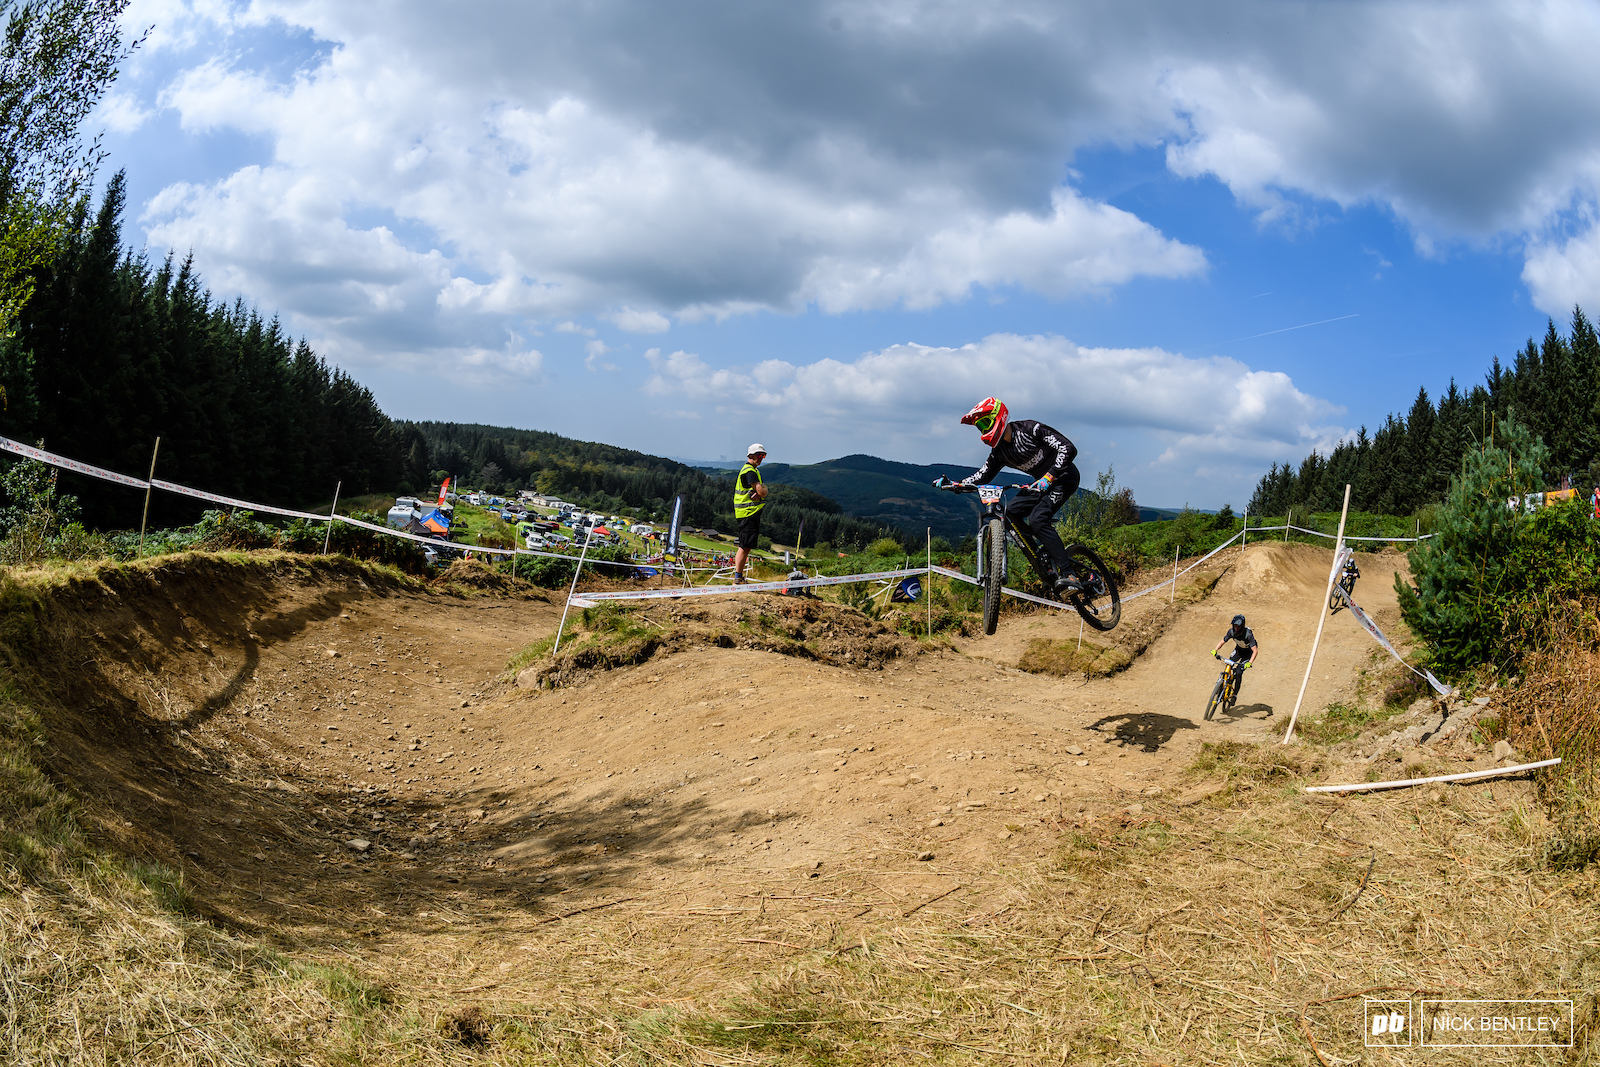 there s plenty of opportunities to send it on the amazingly refurbished Afan track. the Afan forest trail volunteers did an amazing job of refurbishing the track for this weekend of racing